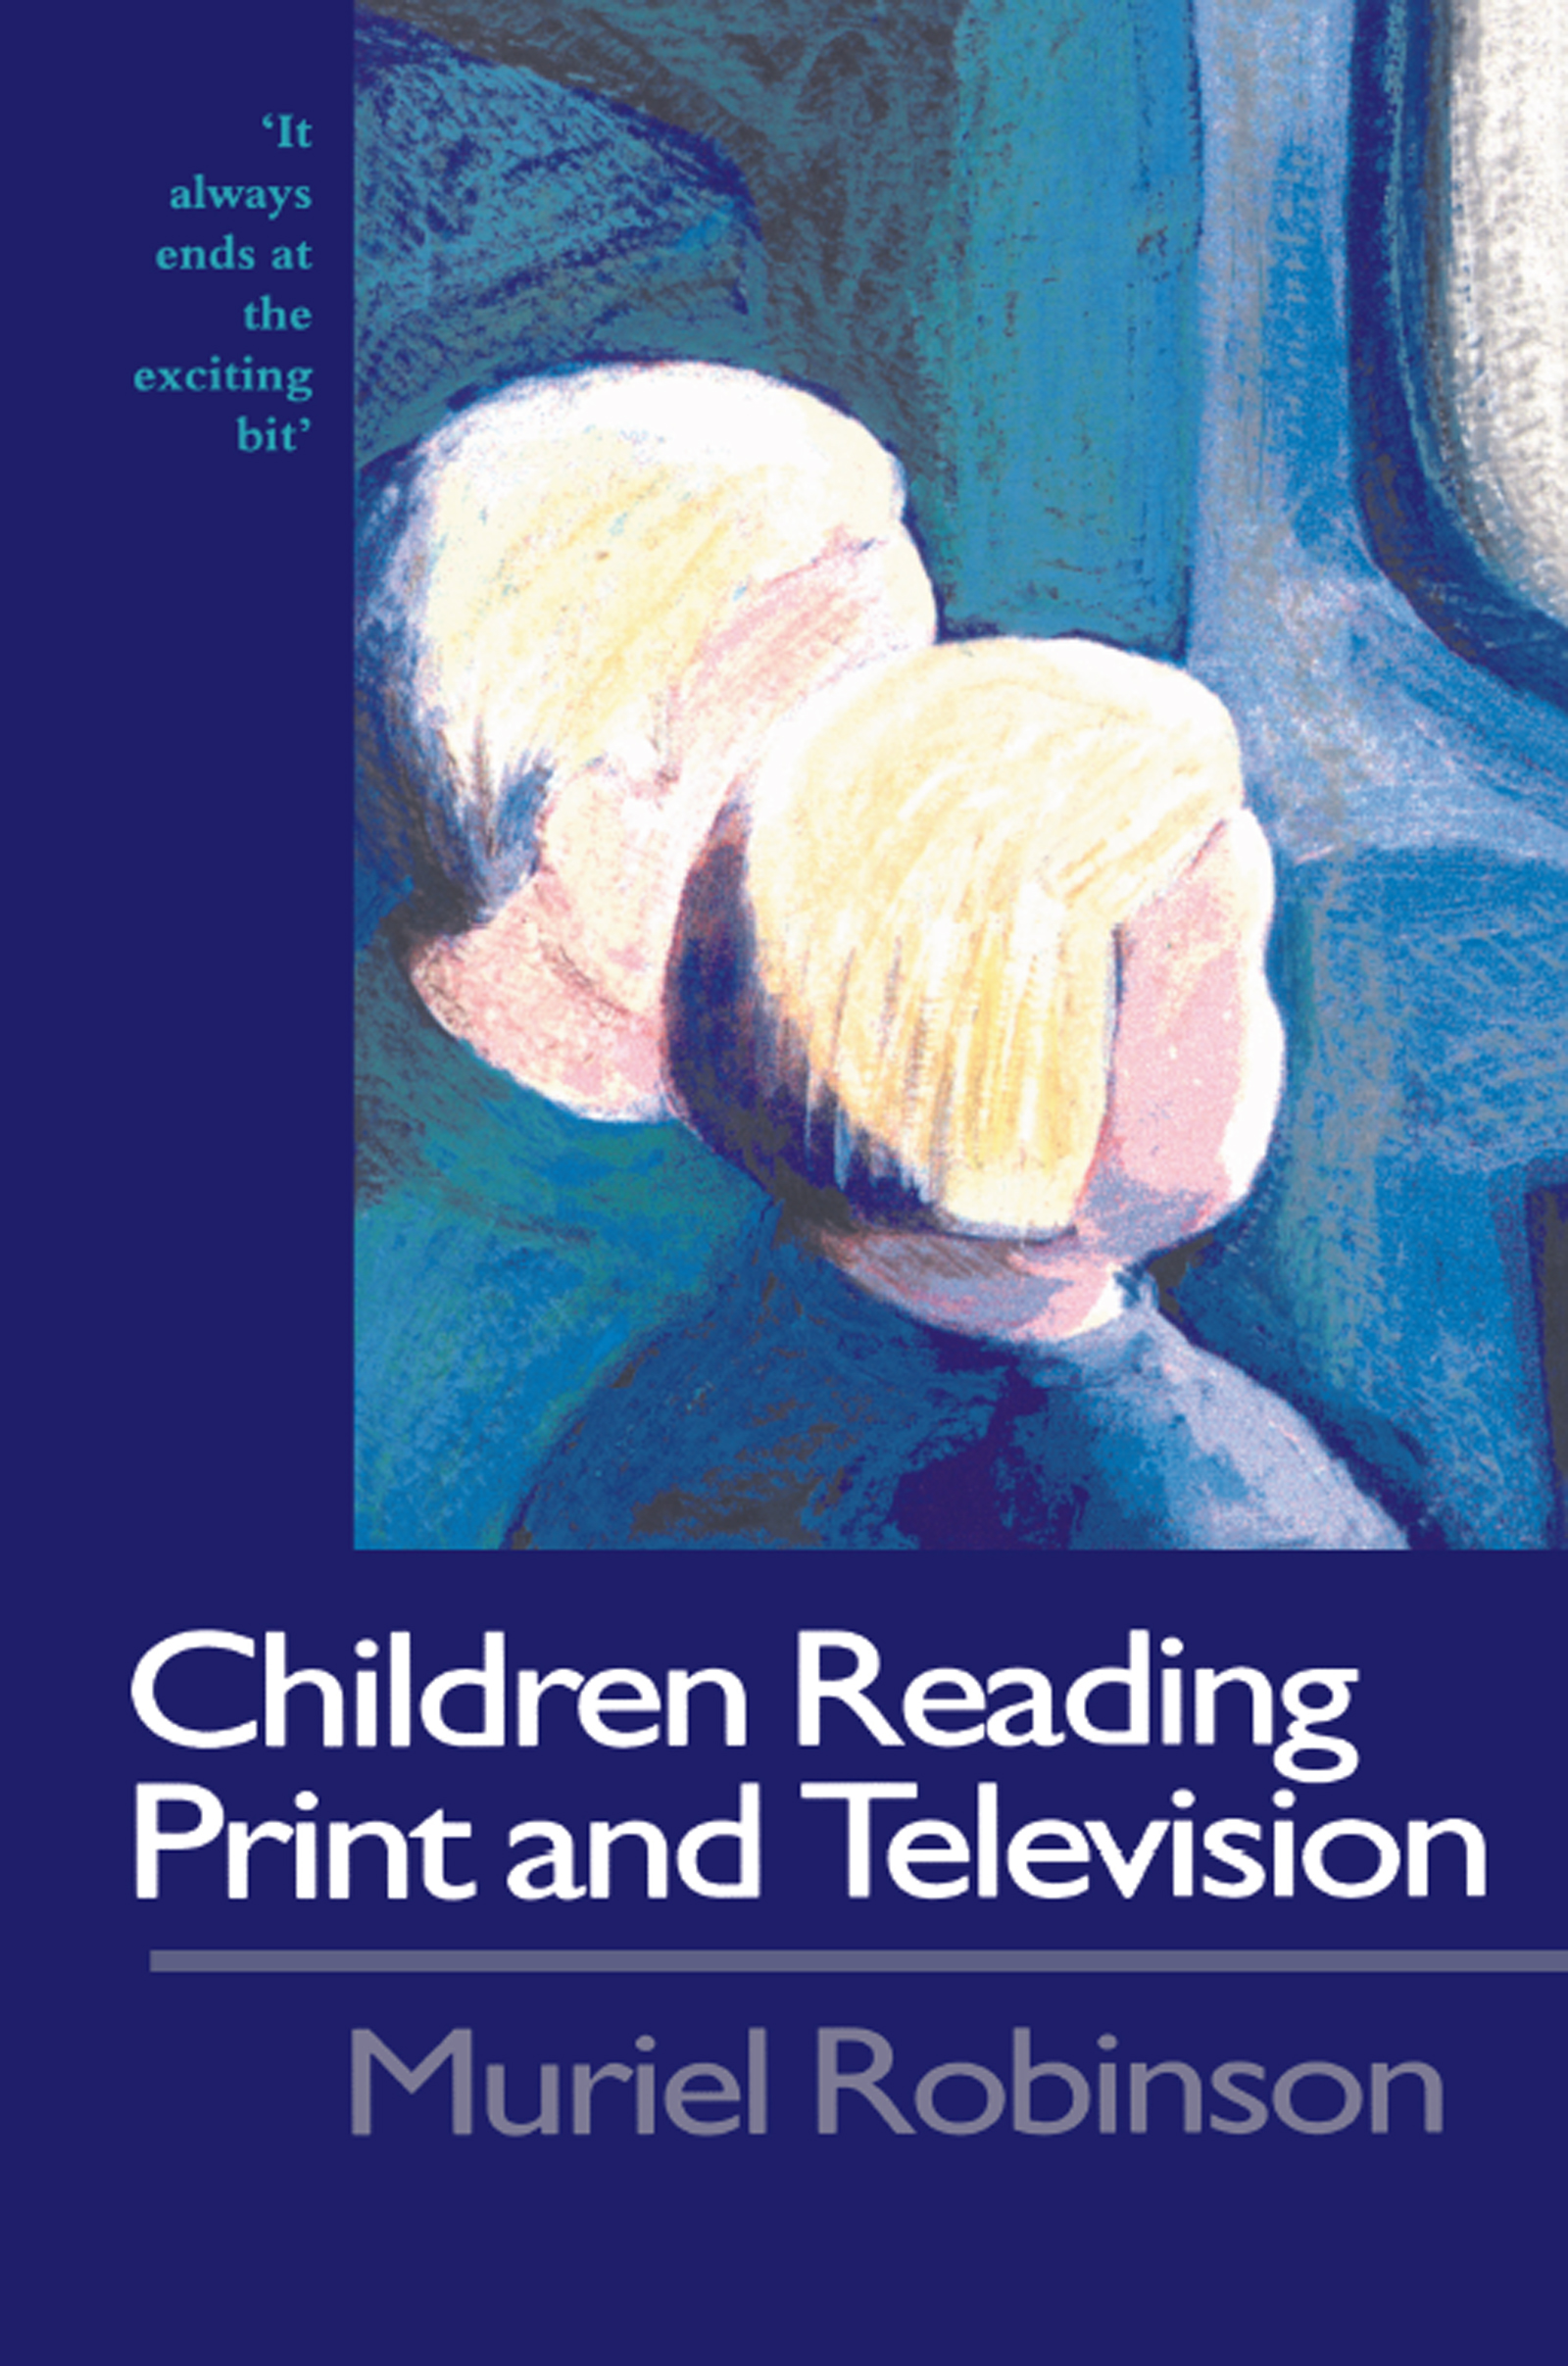 Children Reading Print and Television Narrative: It Always Ends At The Exciting Bit, 1st Edition (Paperback) book cover